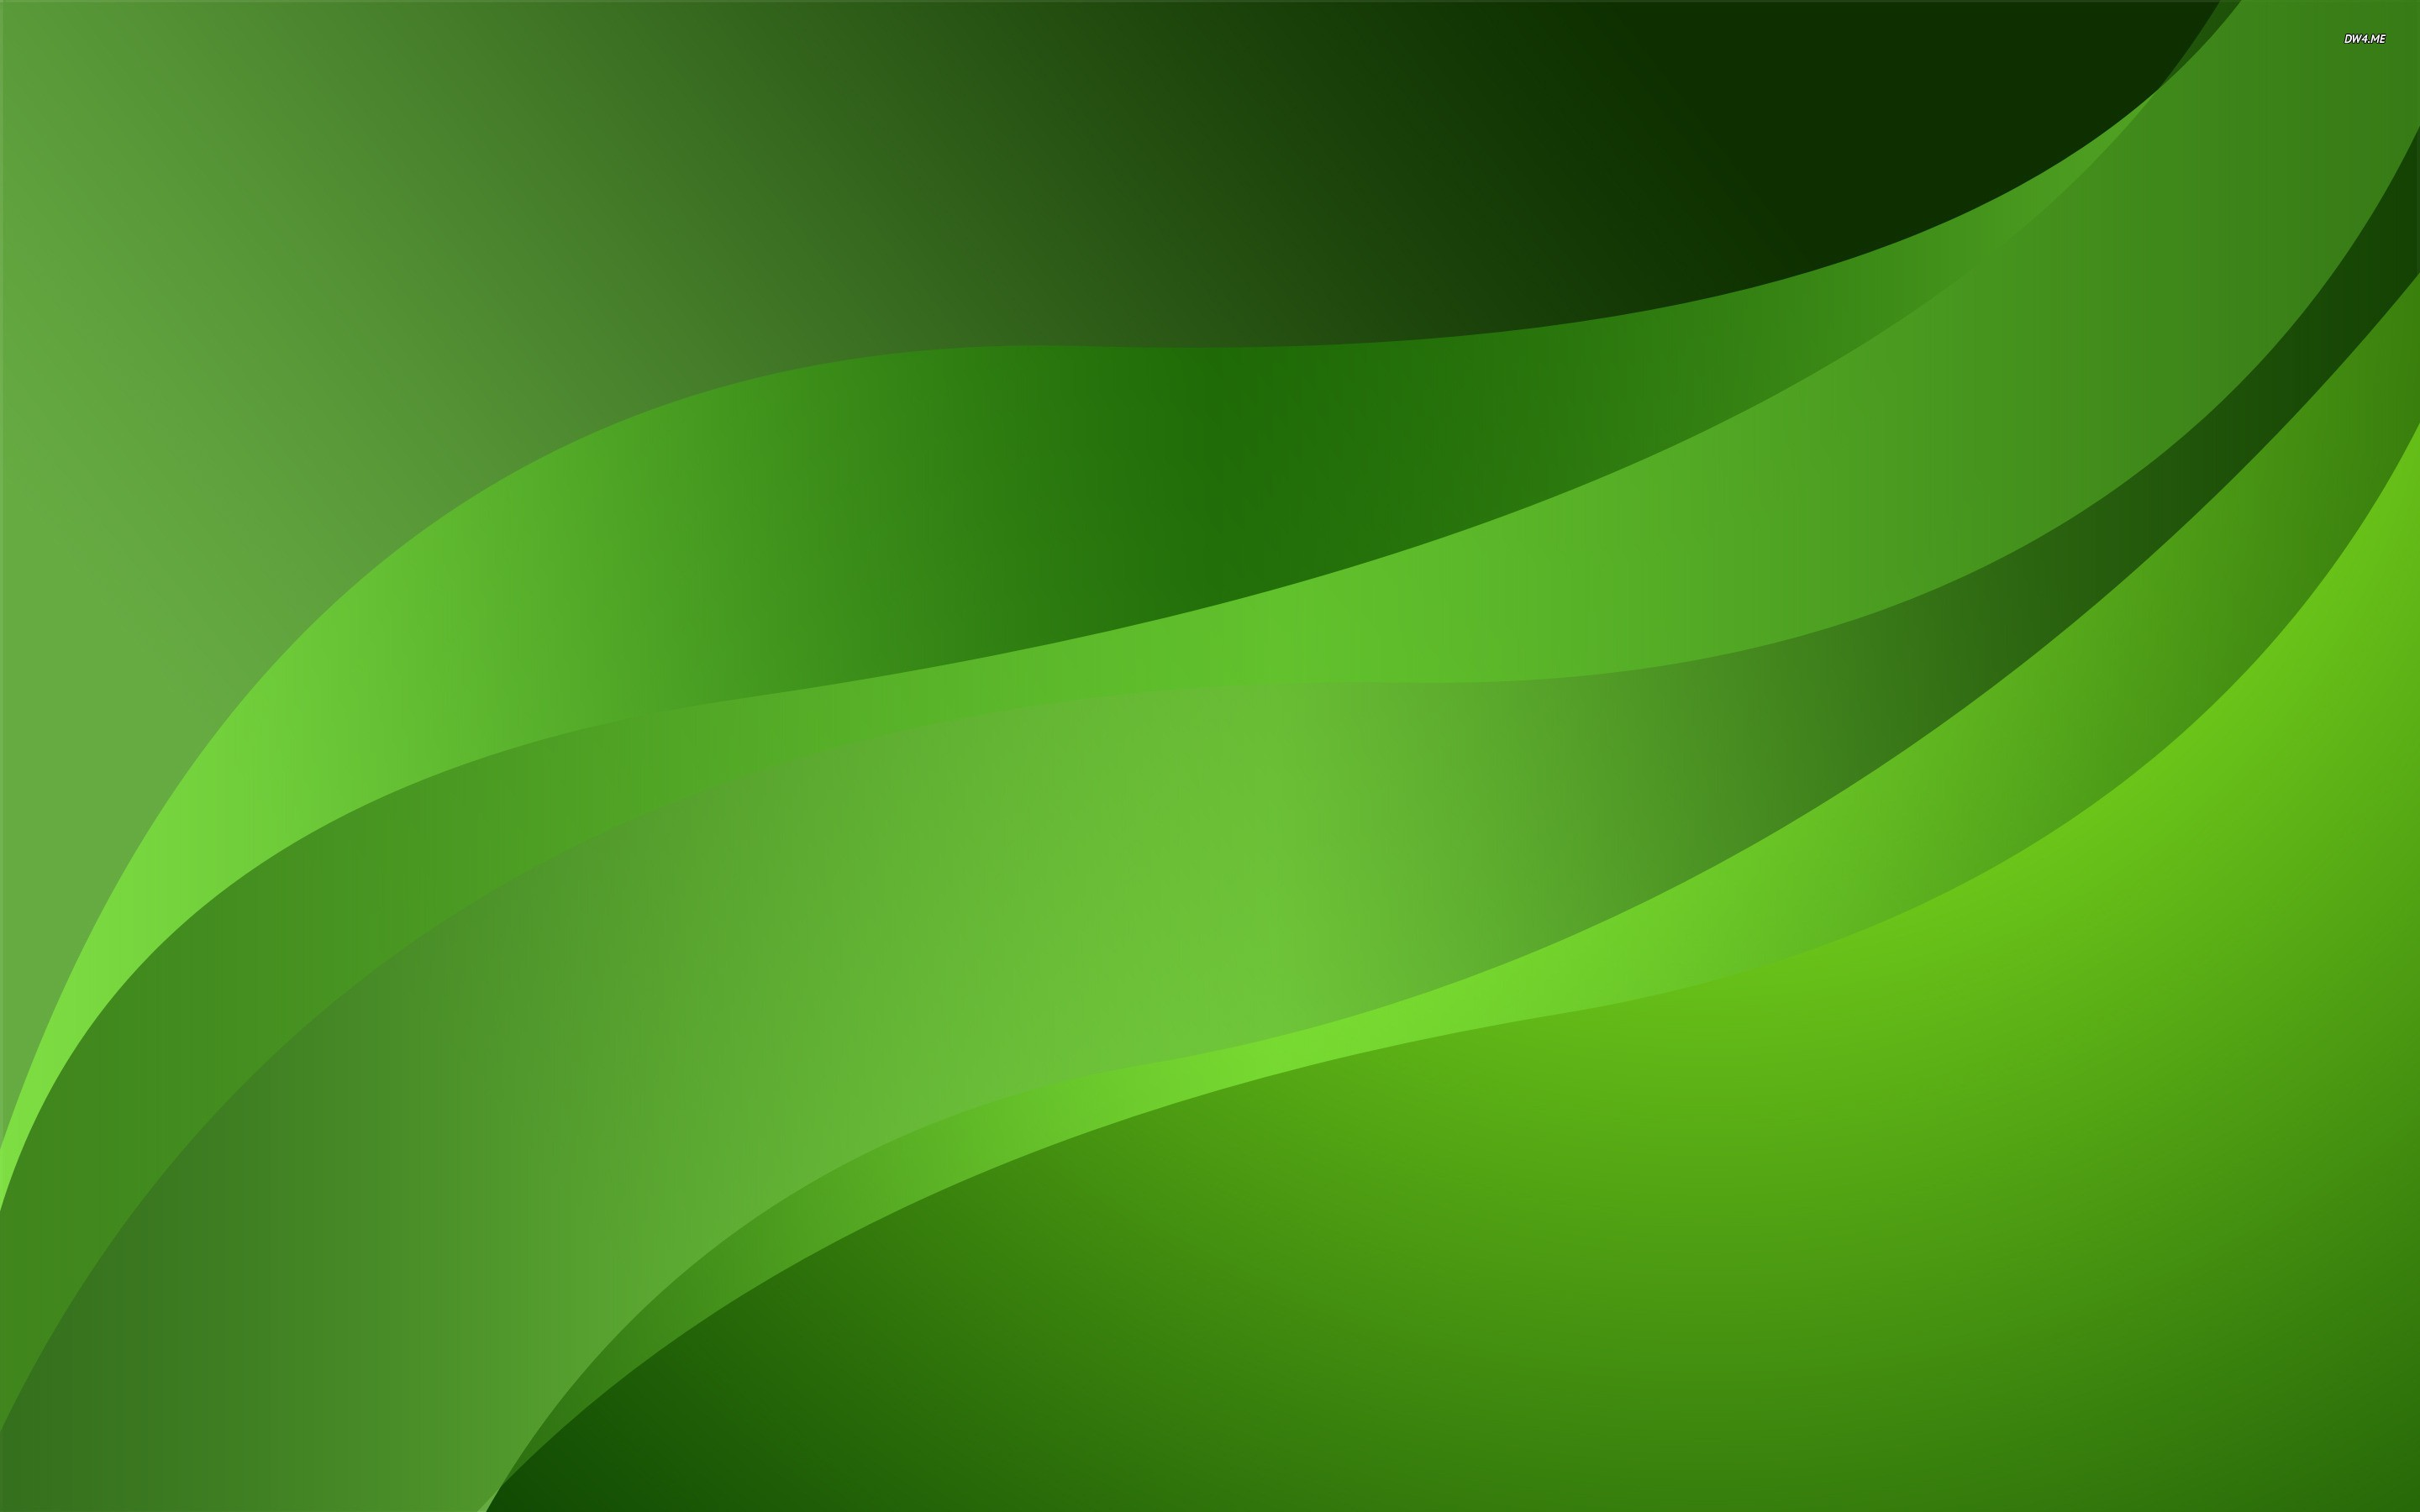 Green Wallpaper ·① Download Free Beautiful Backgrounds For